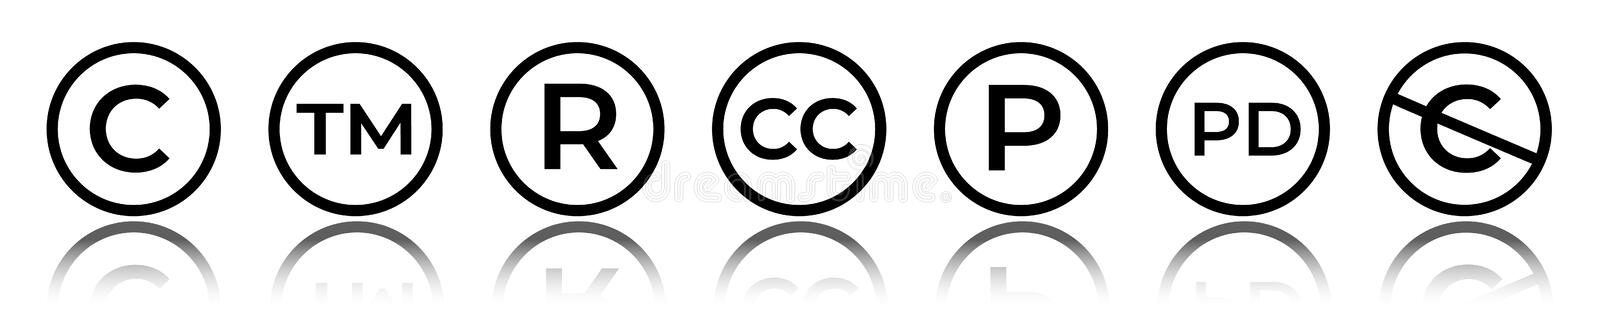 Cet of circular copyright and trademark icons. Right reserved signs. Cet of circular copyright and trademark icons. Right reserved signs vector illustration